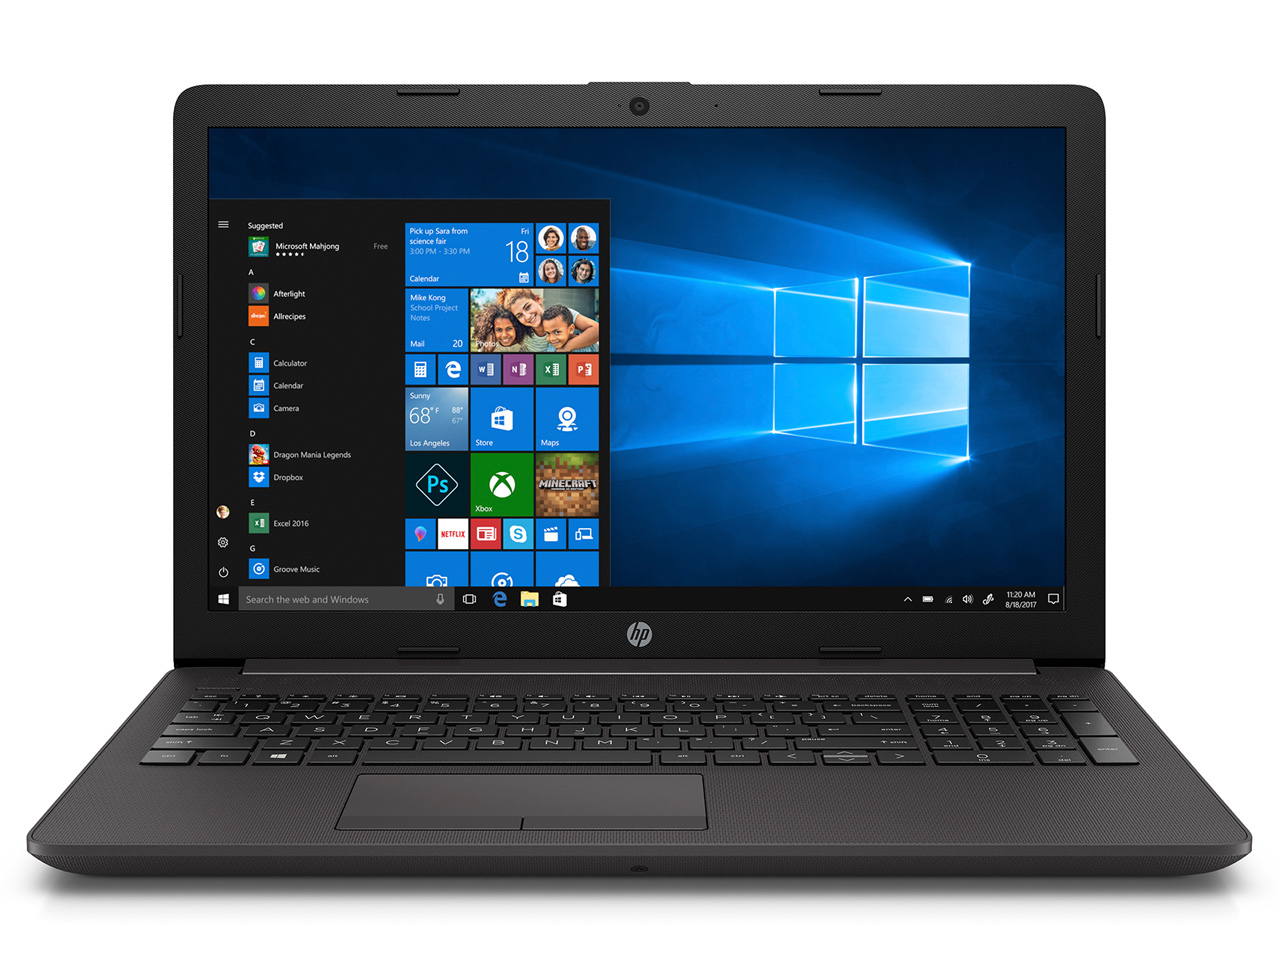 HP 255 G7 Notebook PC A4/4GBメモリ/128GB SSD 価格.com限定モデル2